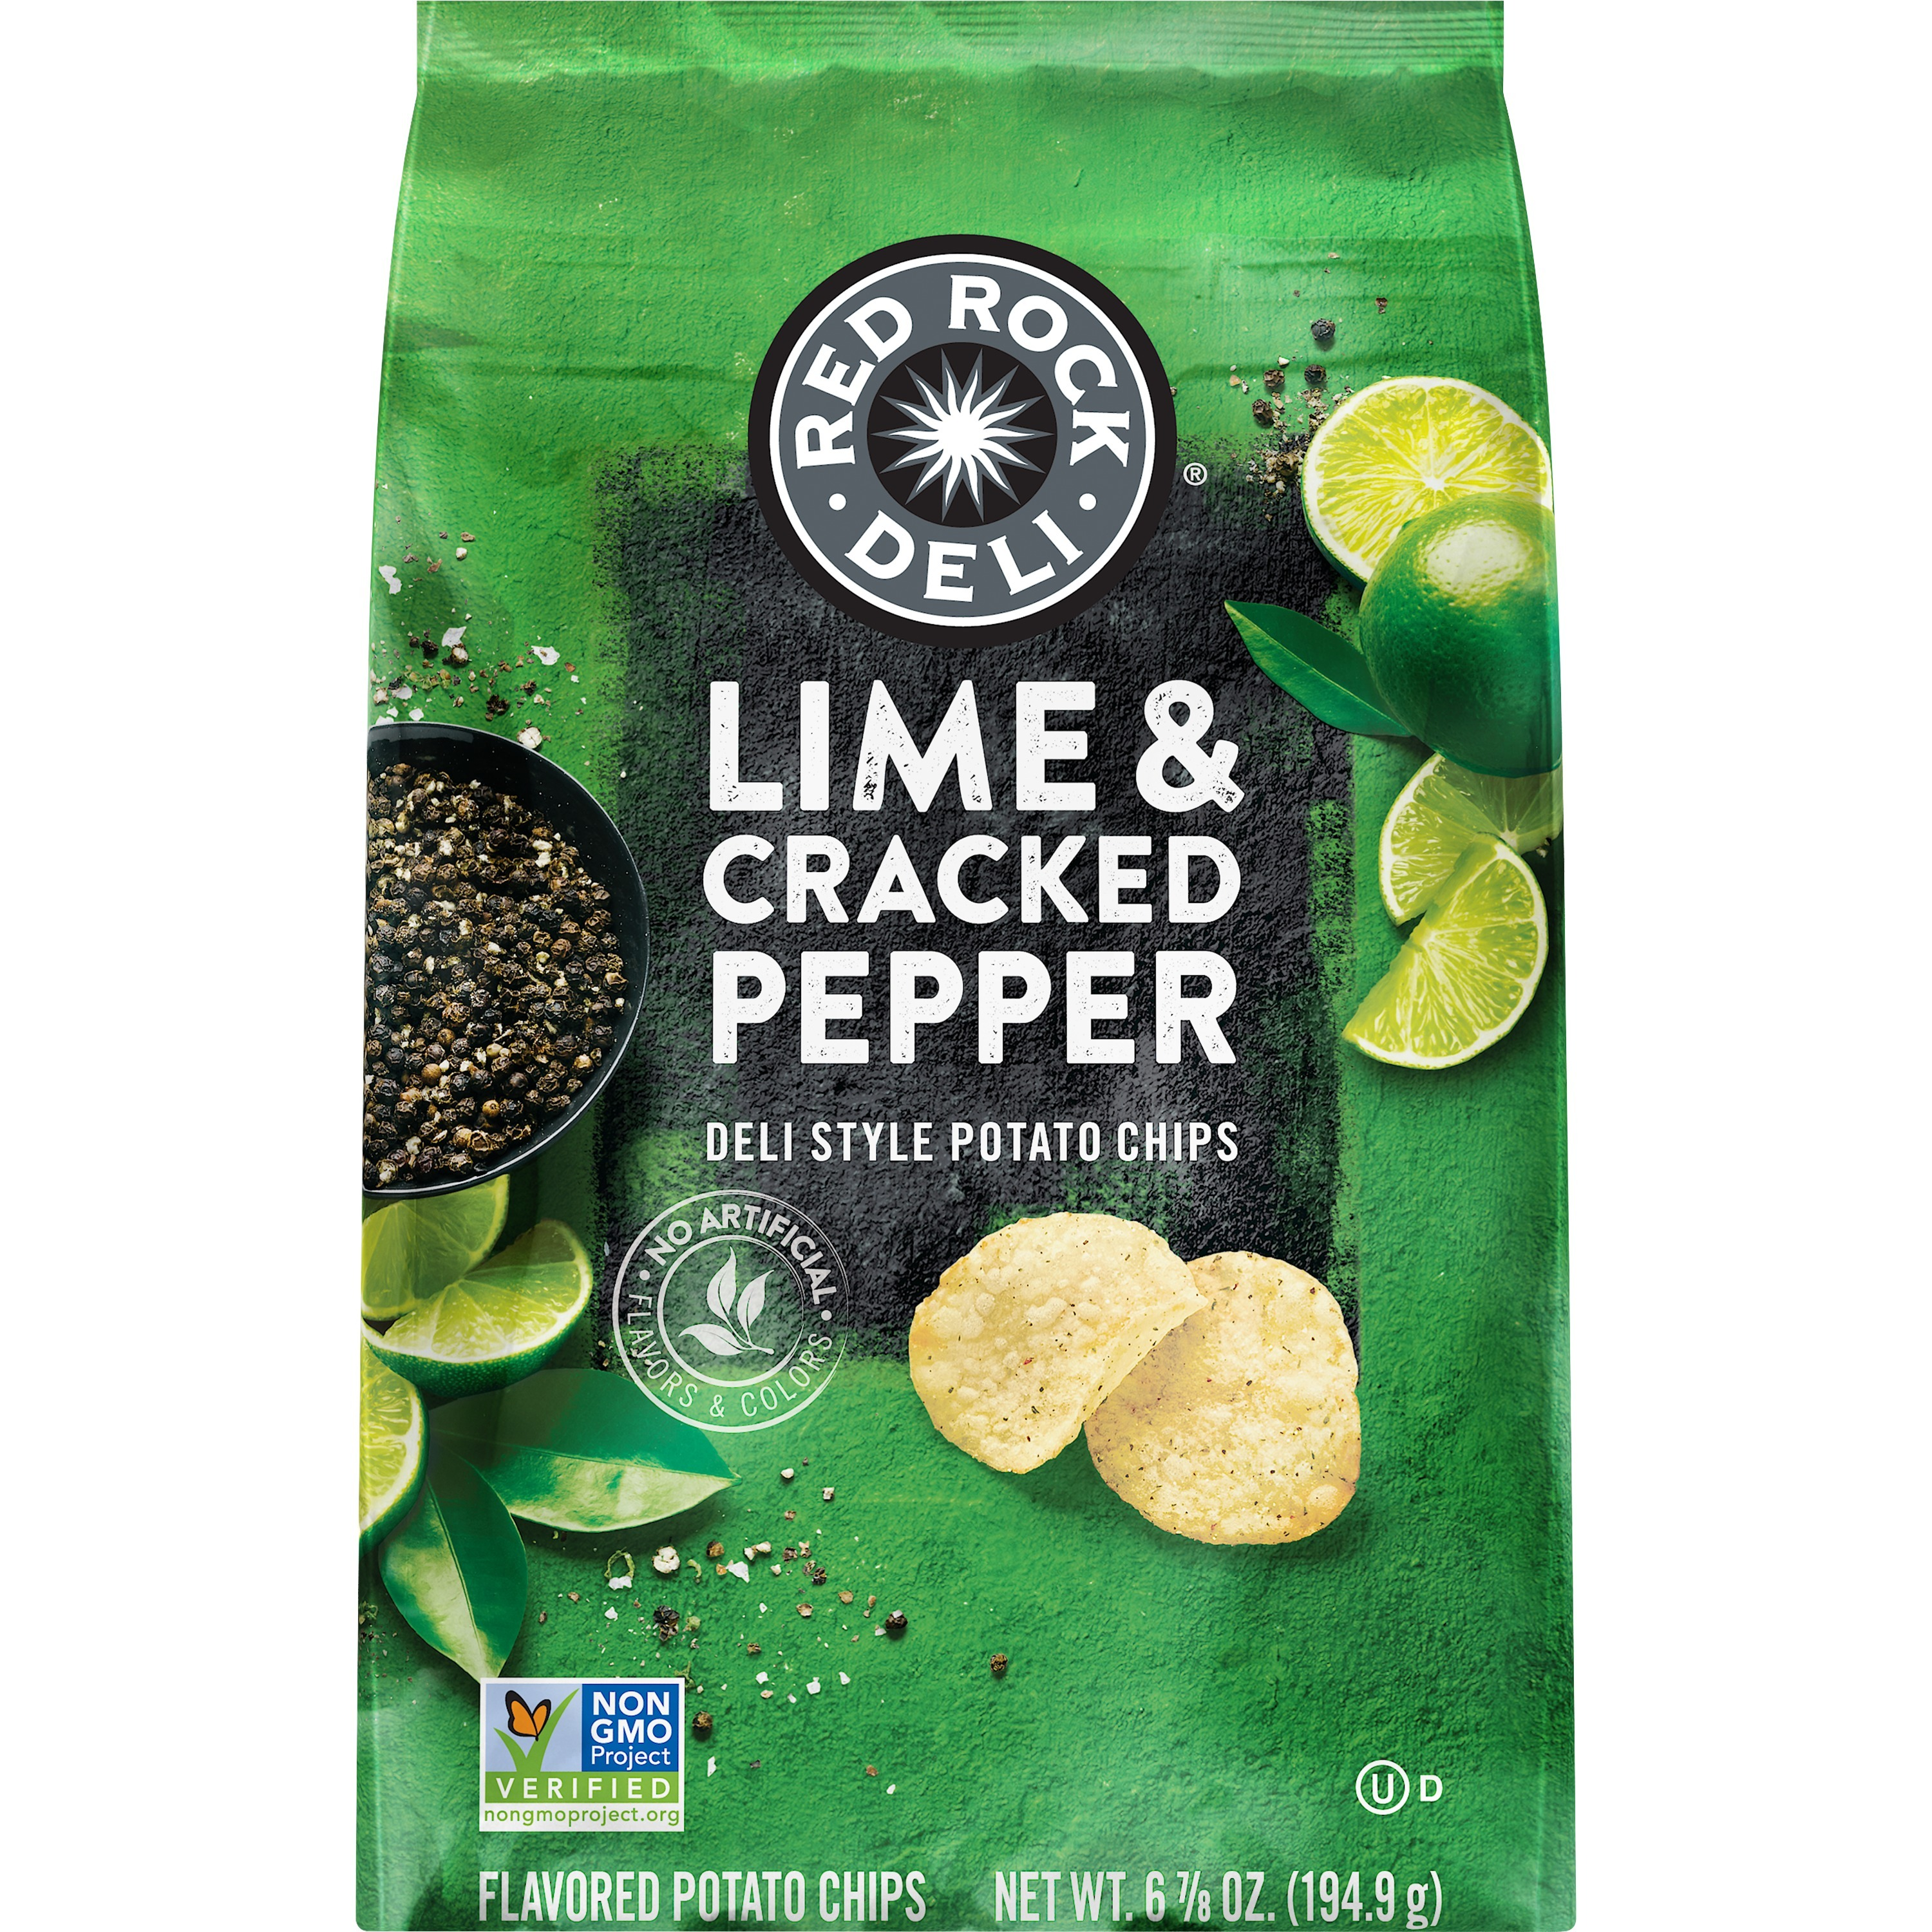 Red Rock Deli Potato Chips, Lime and Cracked Pepper, 6.87 oz